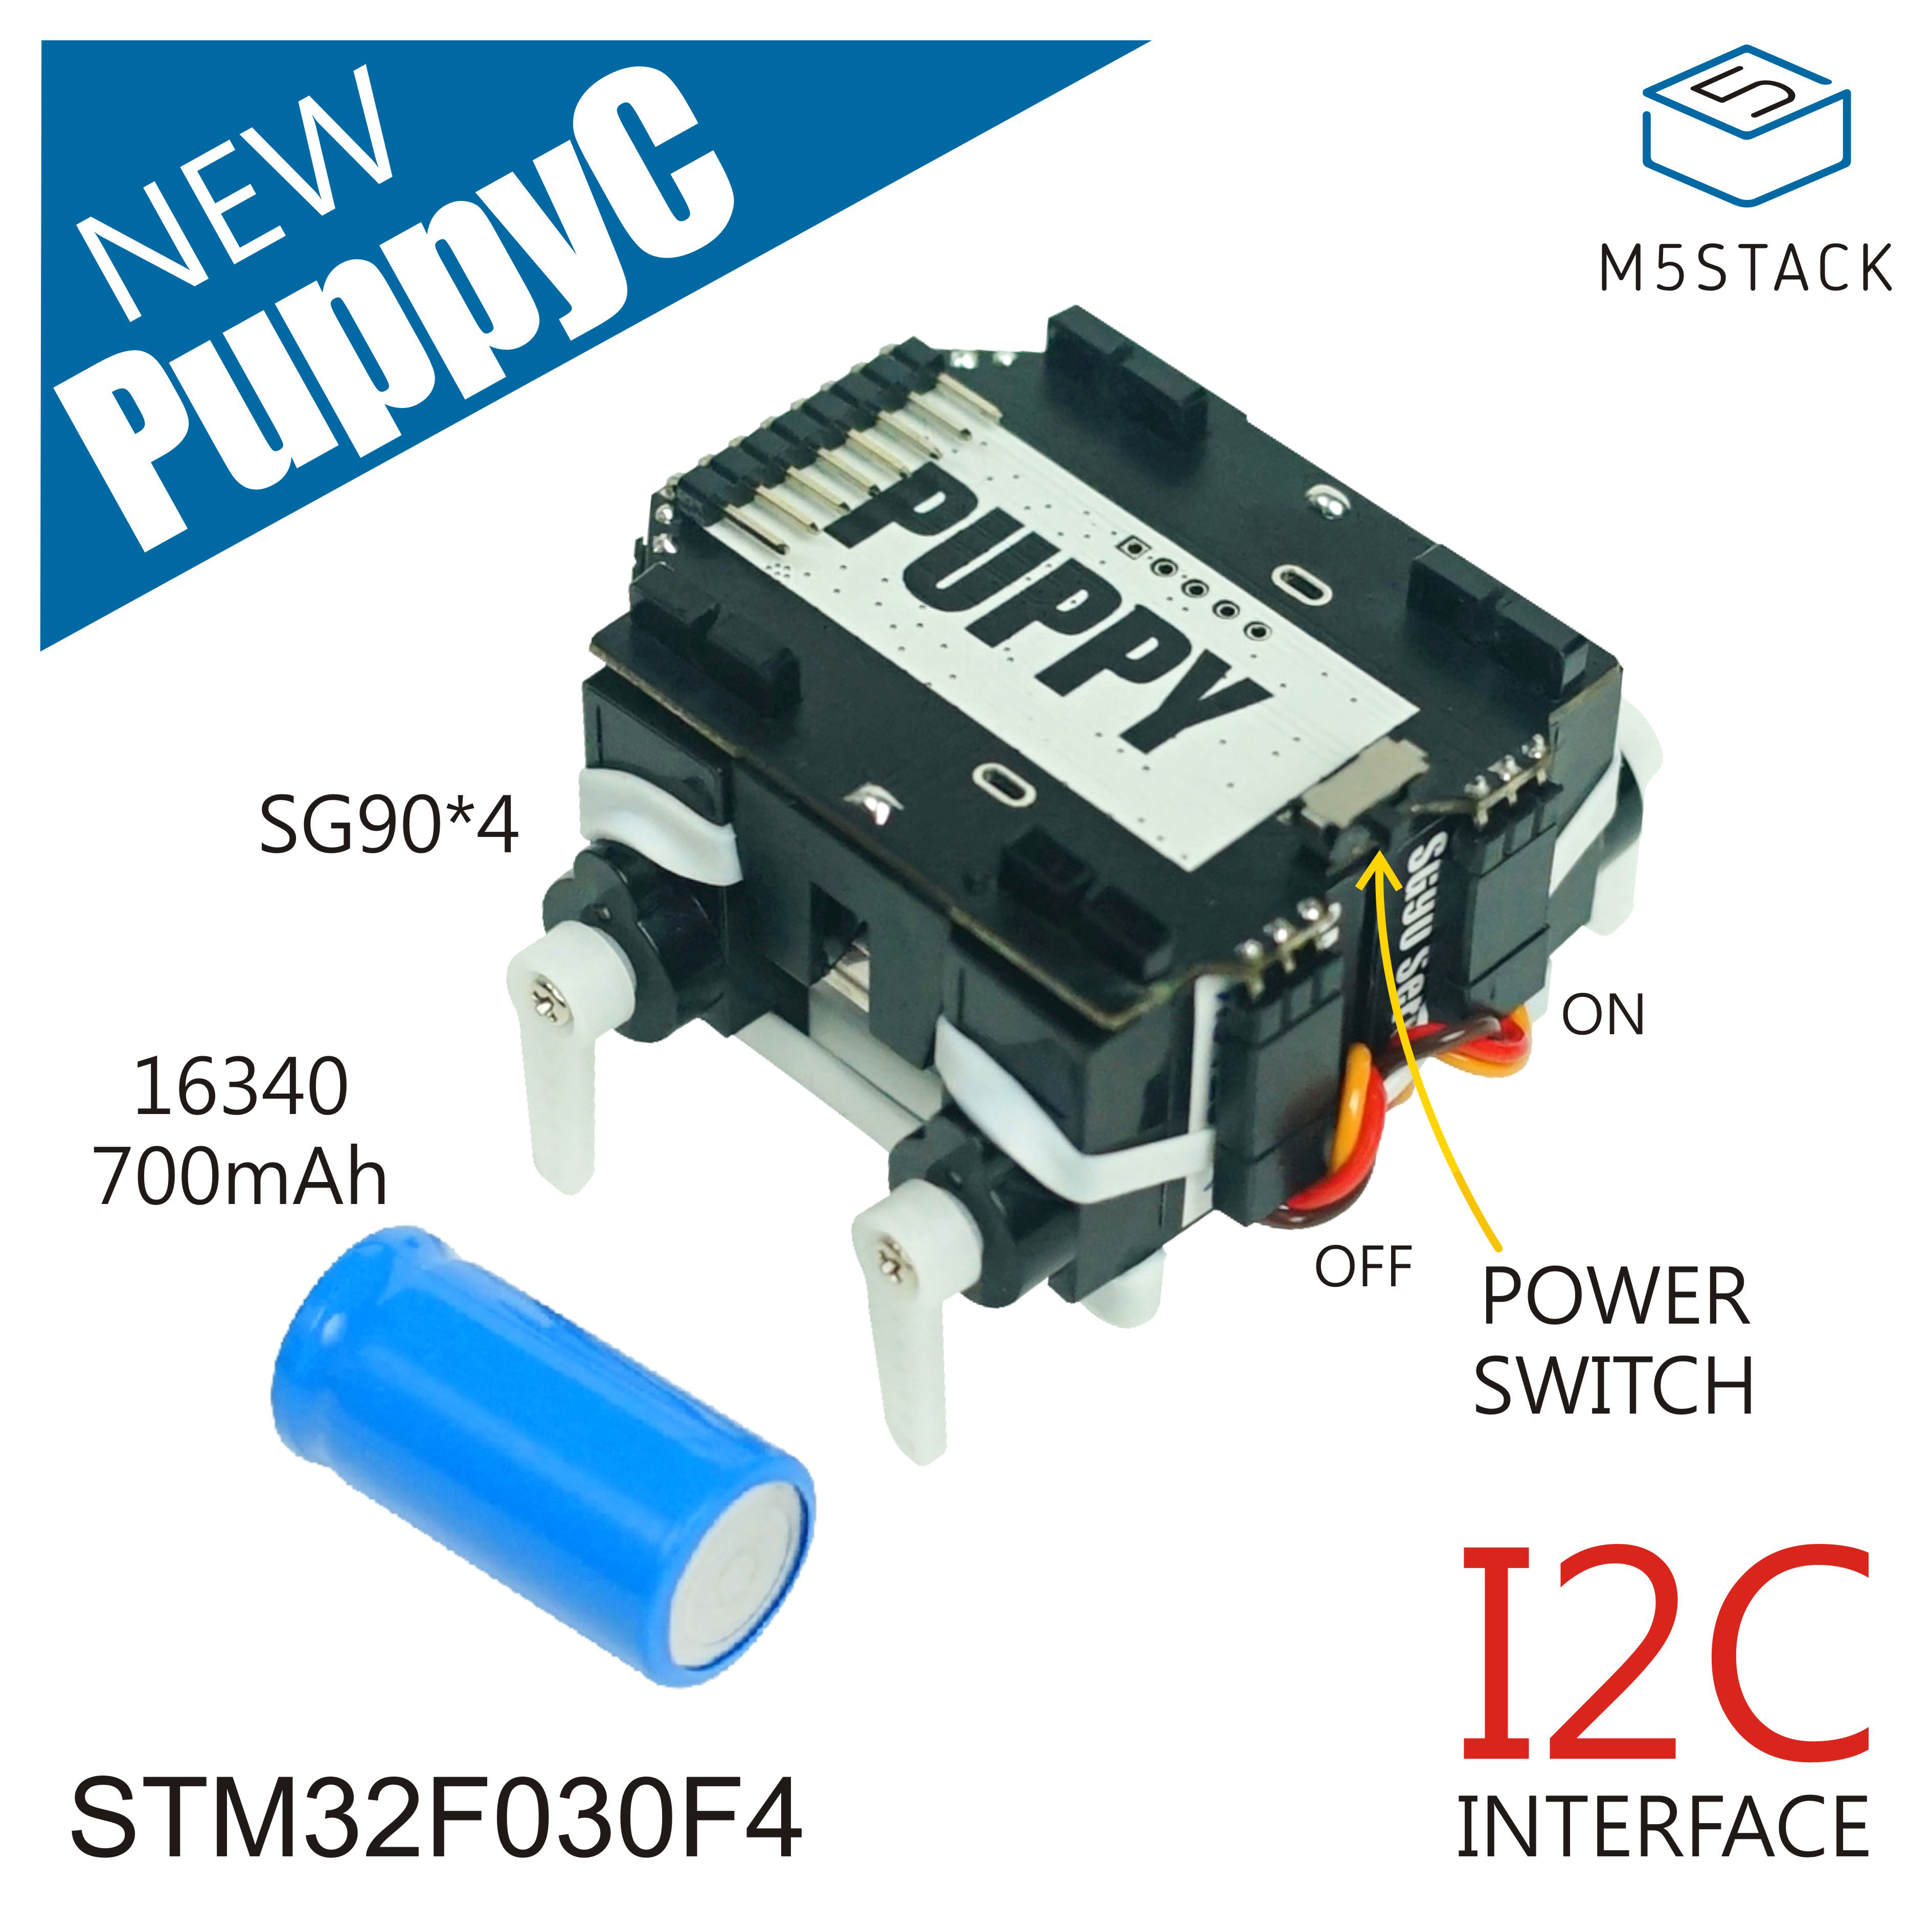 M5Stack PuppyC Programmable Four-Legged Robot Base Compatible With M5StickC STM32F030F4 Microcontroller SG90 Servos Controller